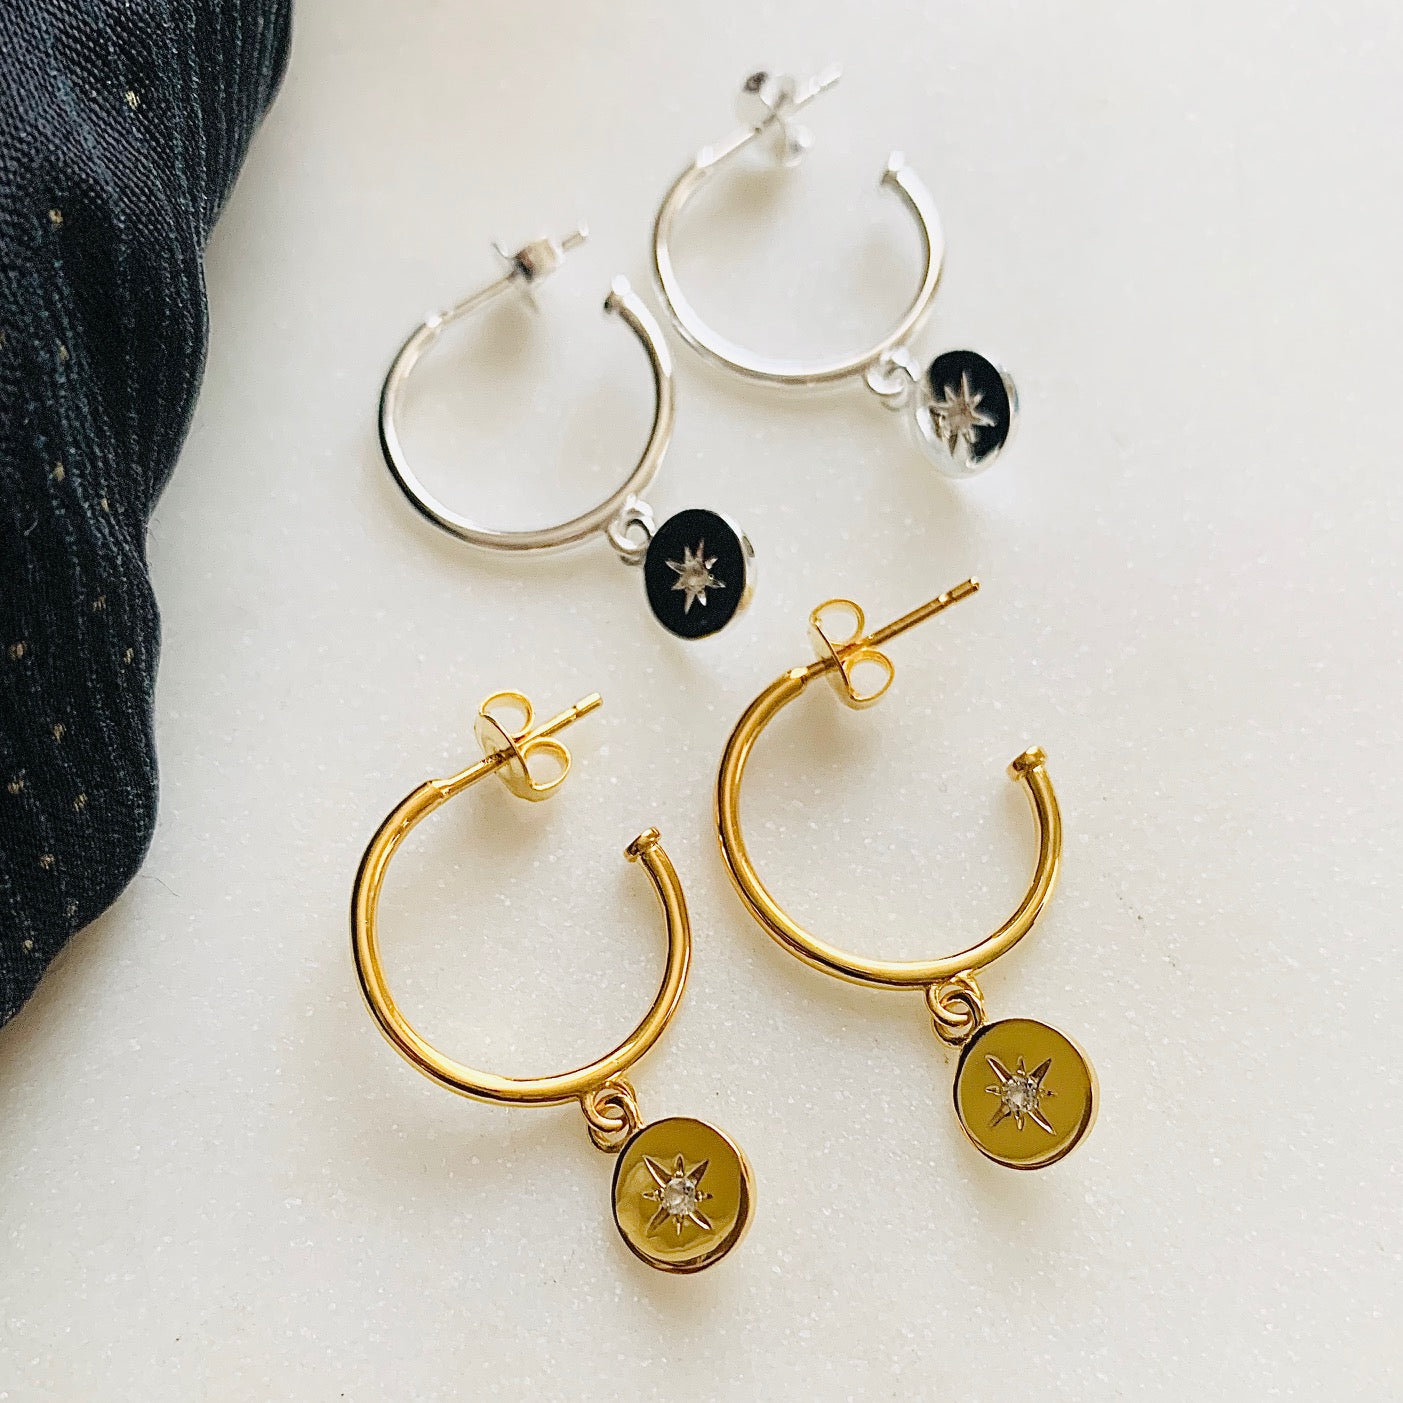 Travelling Star Hoop Earrings by Pearl & Queenie